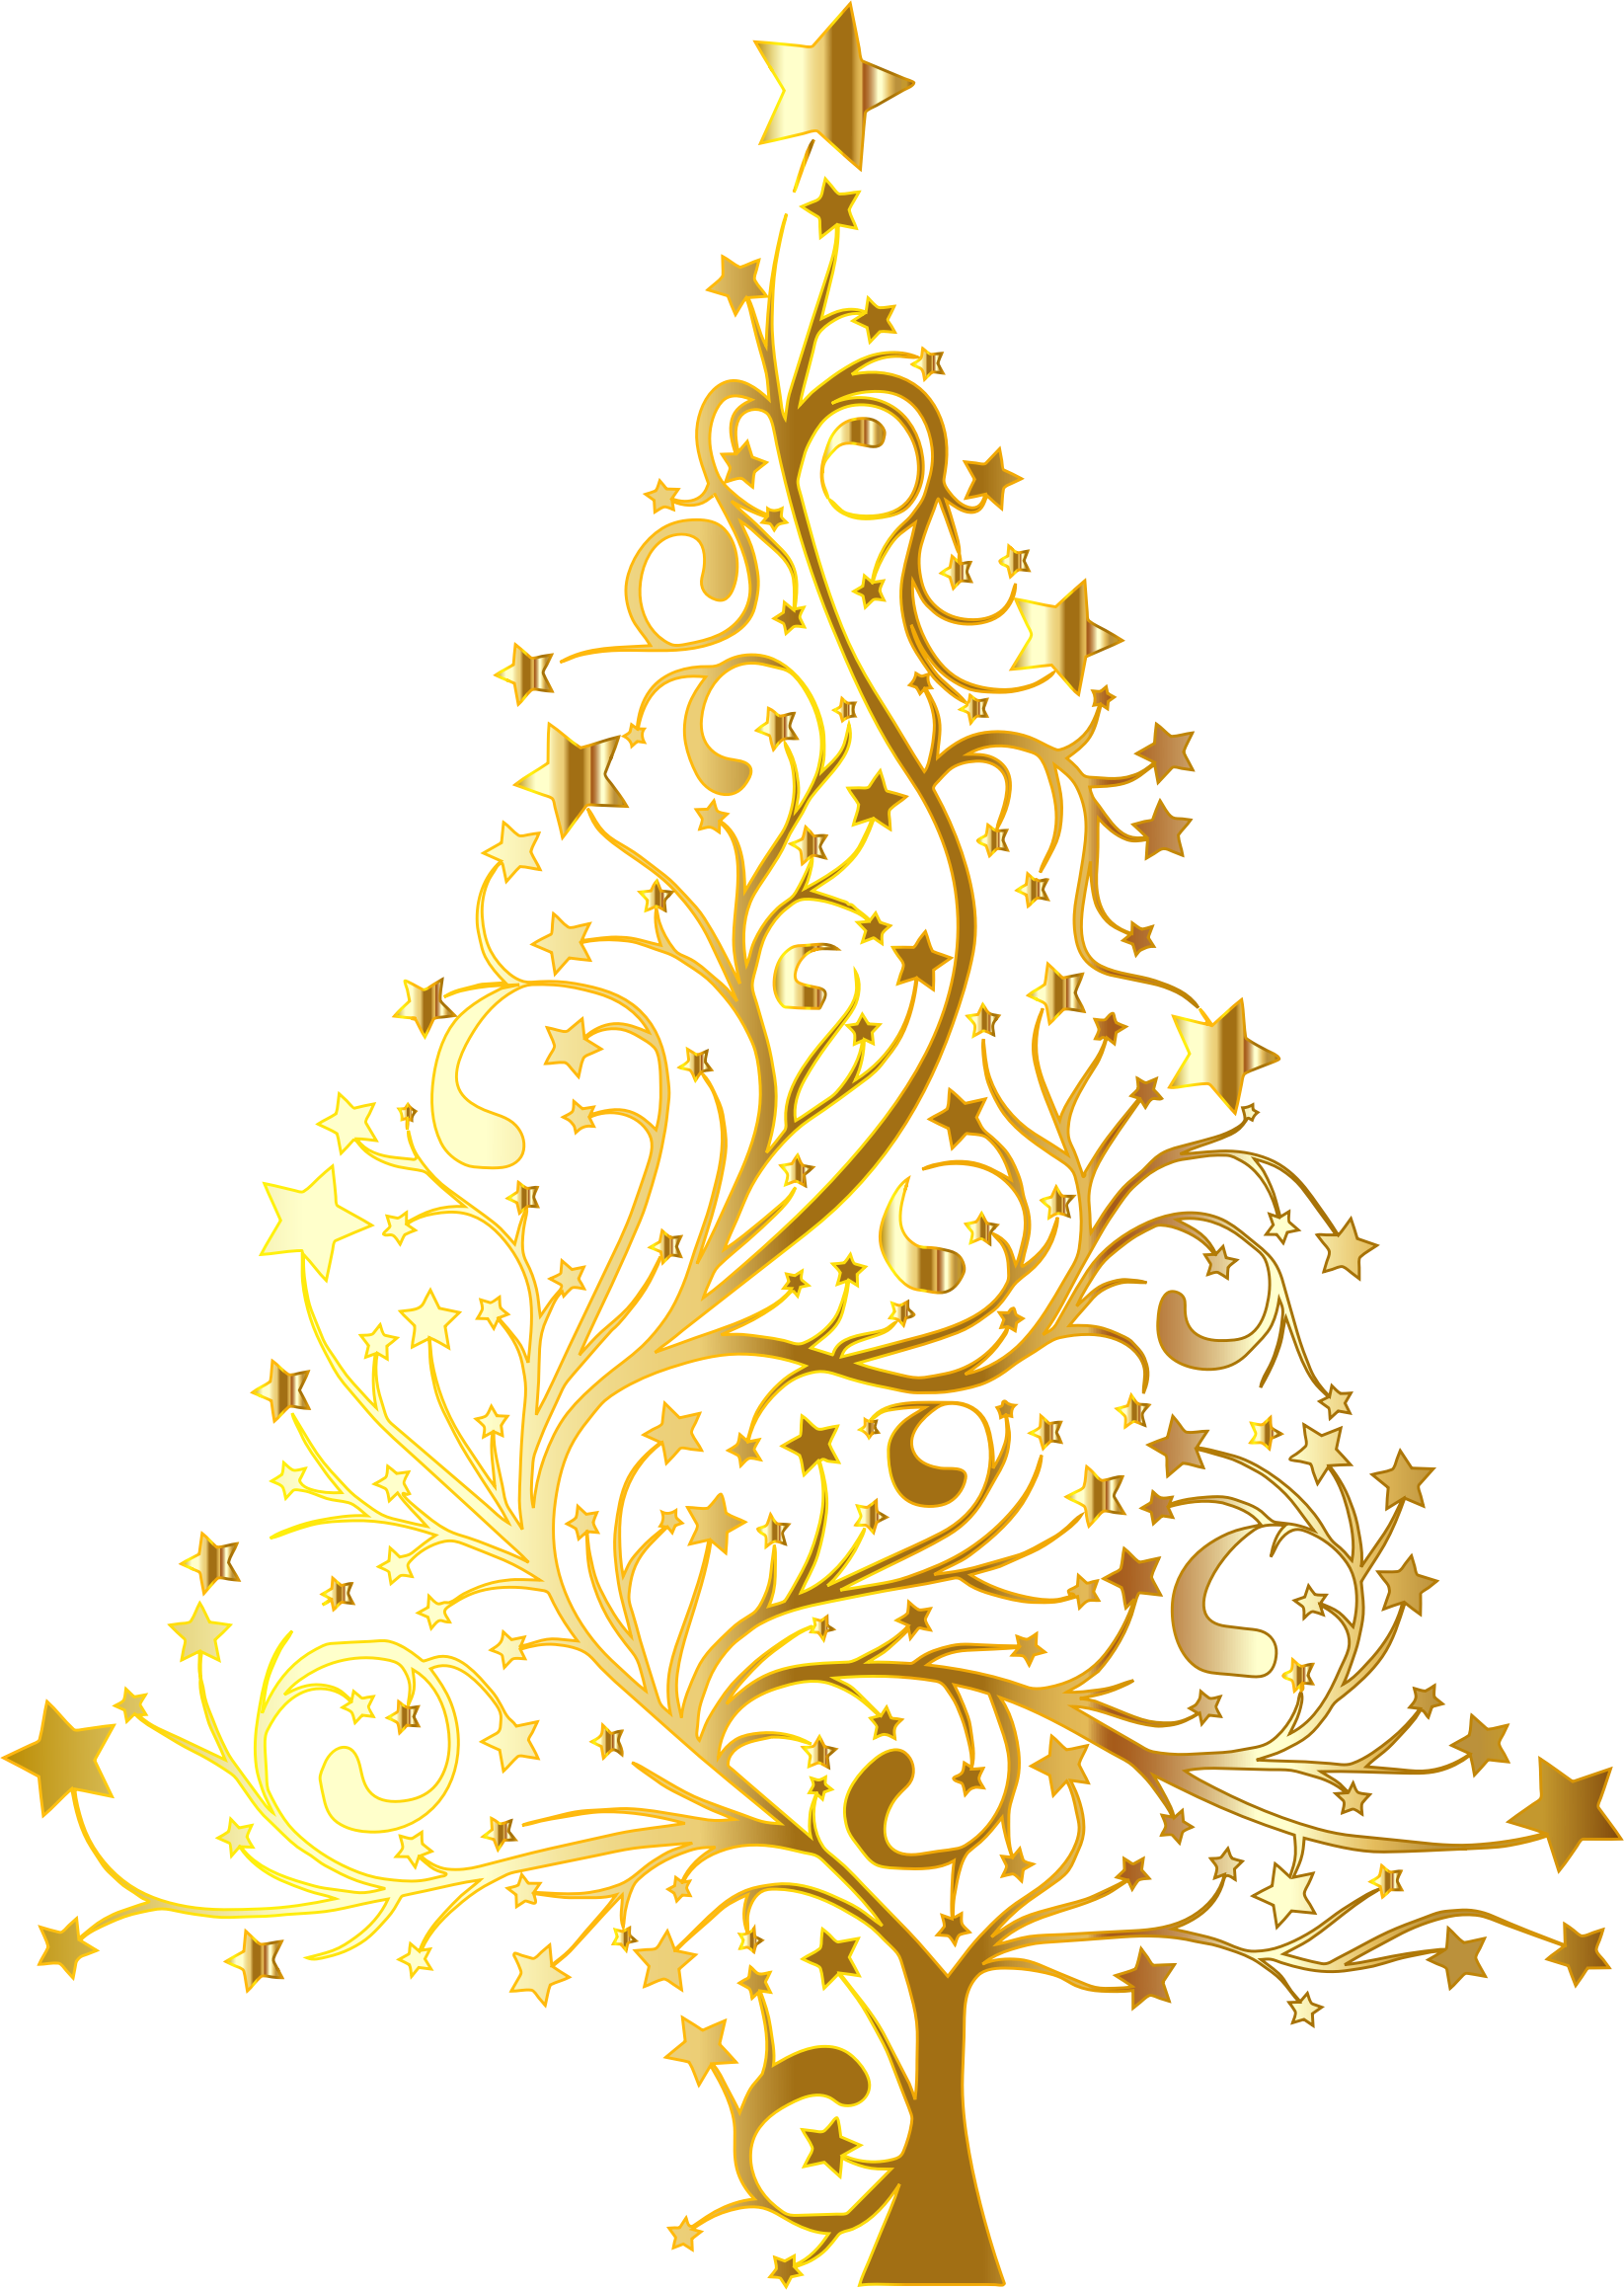 Starry Christmas Tree Gold No Background by GDJ | Christmas ...